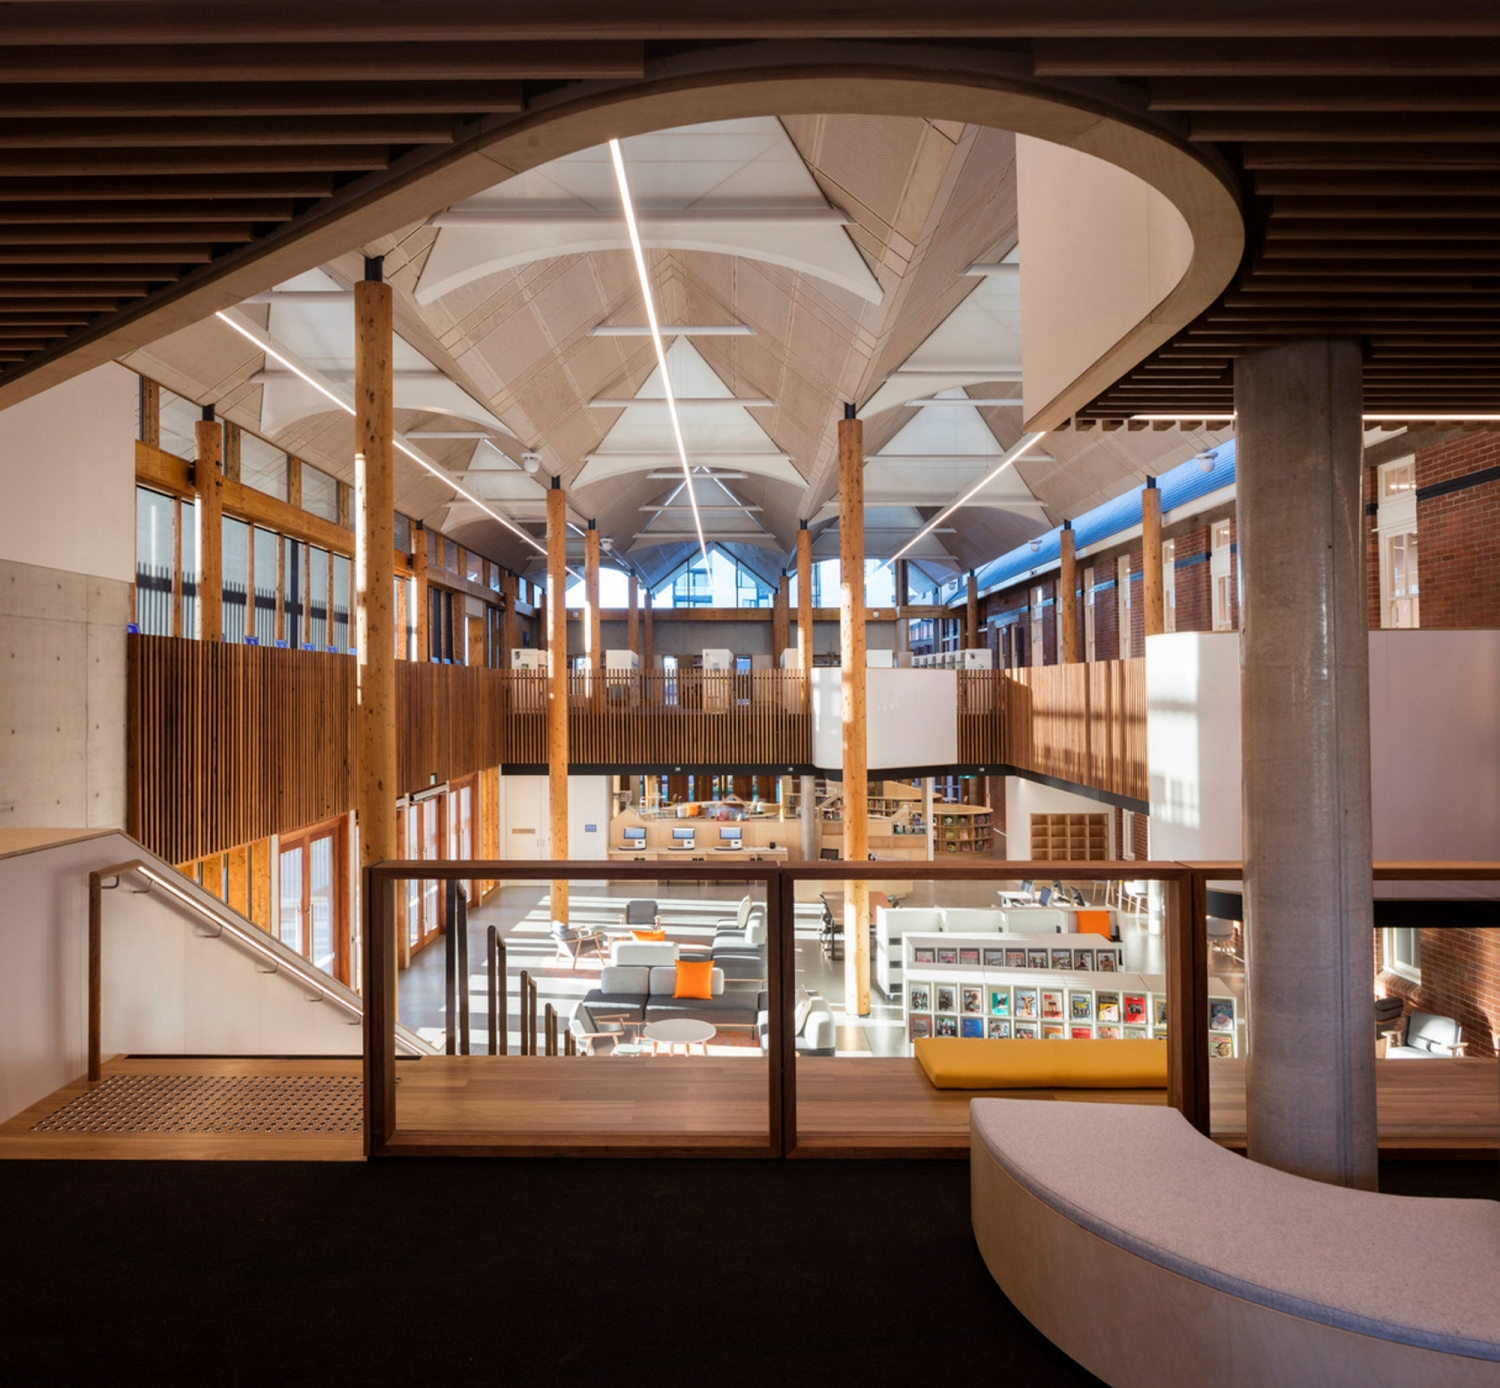 Interior view of Marrickville Library.